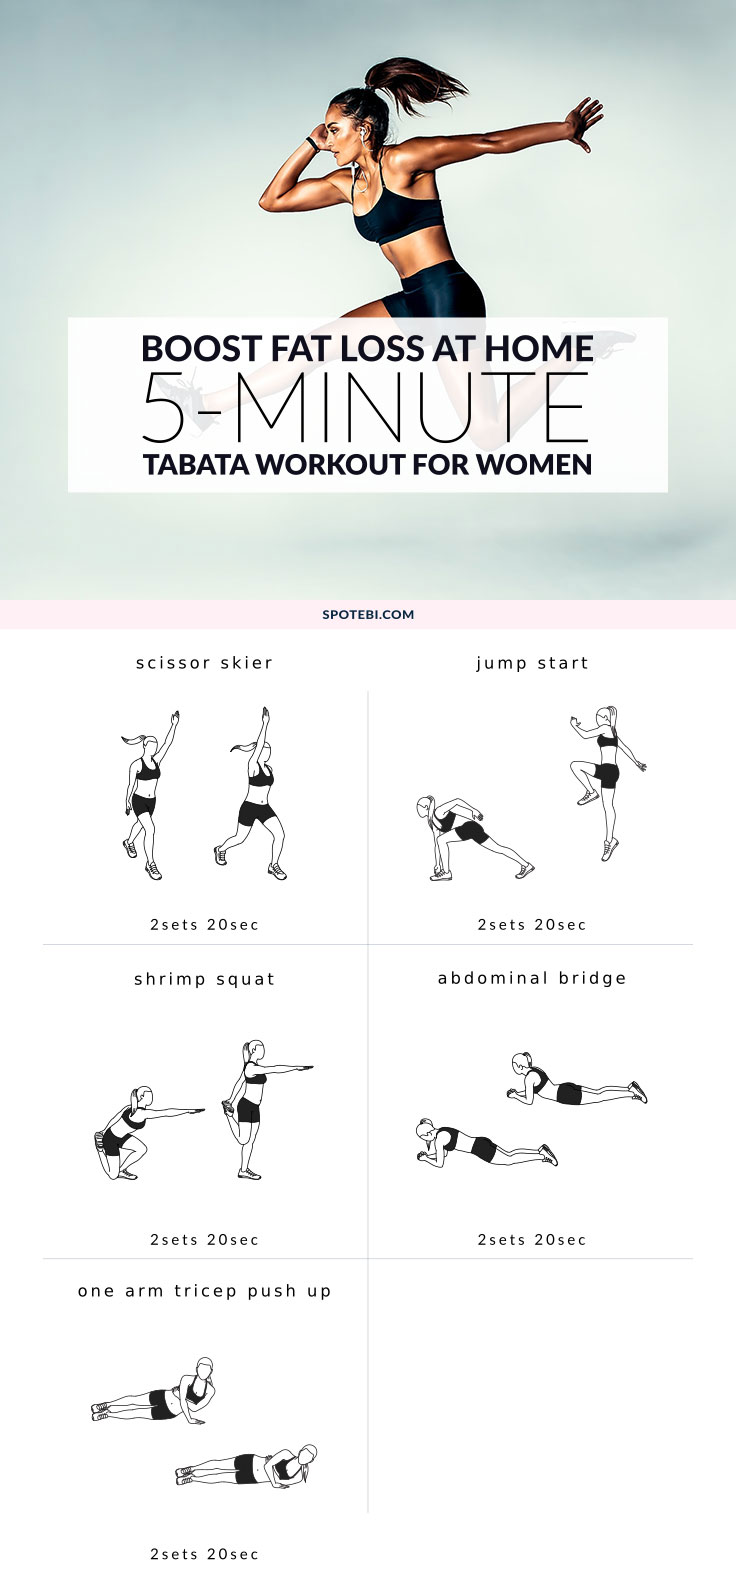 The Tabata training approach calls for 20 seconds of ultra-intense exercise followed by 10 seconds of rest. This high-intensity type of training is fun, boredom-proof and helps you burn more fat in less time. Try our 5-minute full body Tabata workout to get the body you want in just minutes a day! https://www.spotebi.com/workout-routines/tabata-training-5-minute-workout-boost-fat-loss/